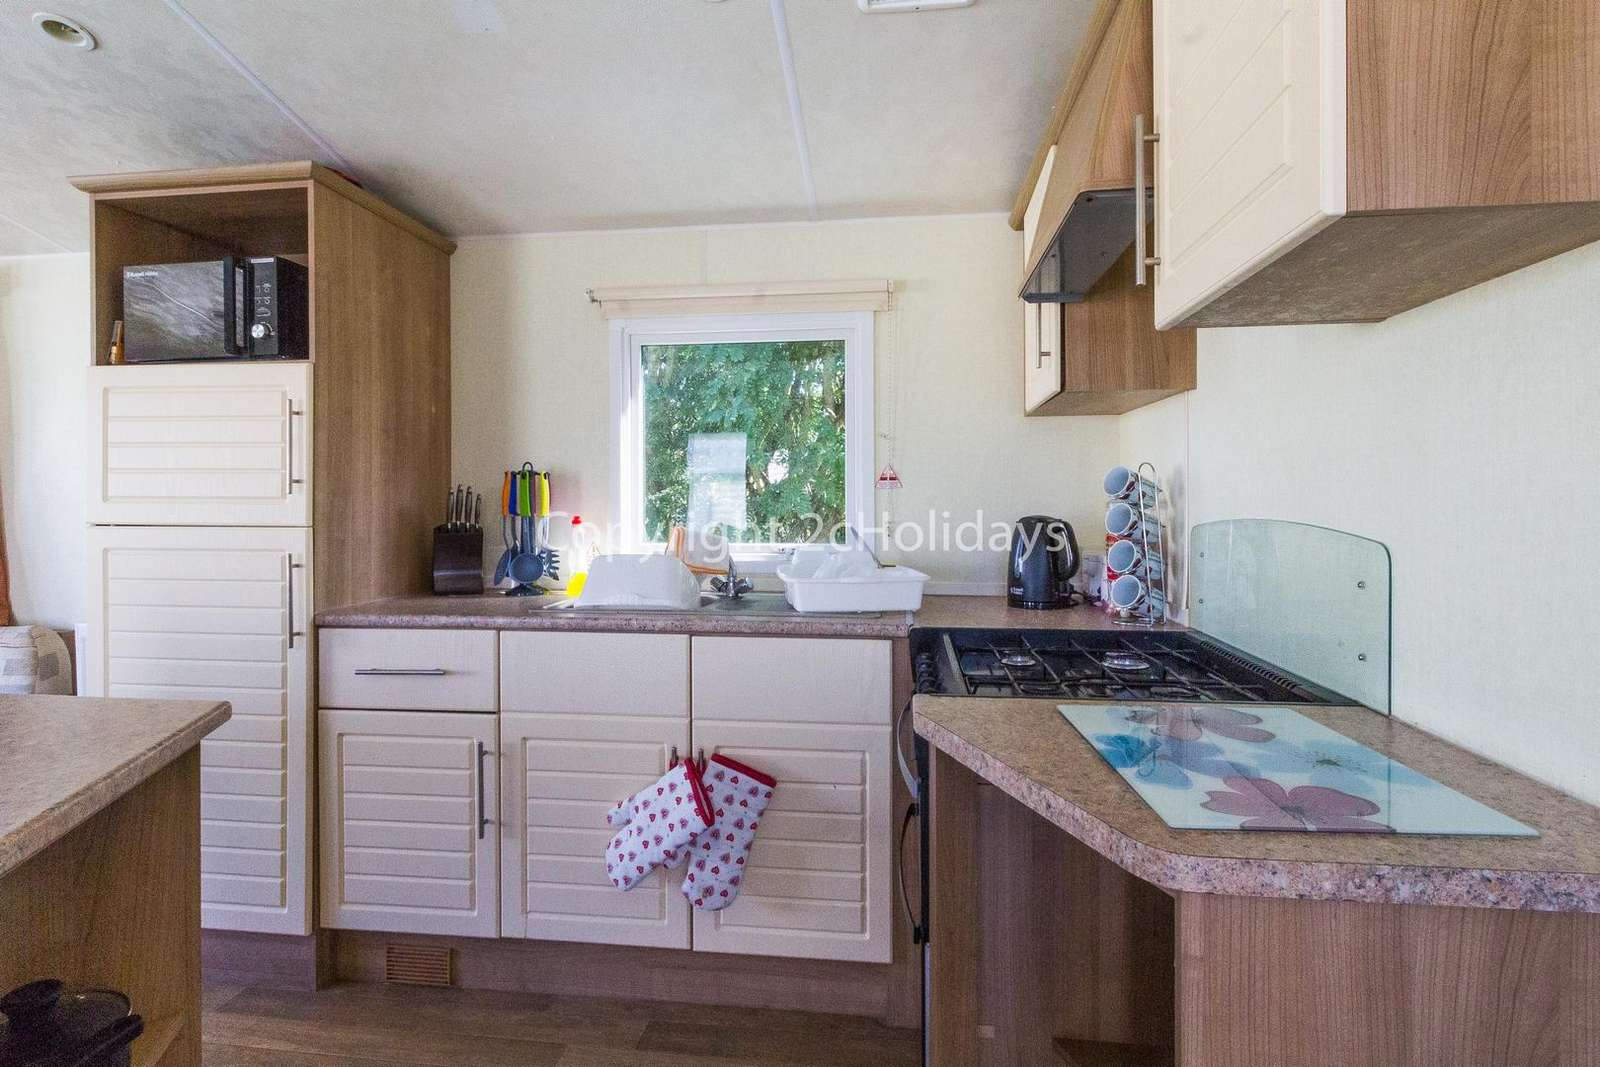 A fully equipped kitchen, perfect for self-catering holidays